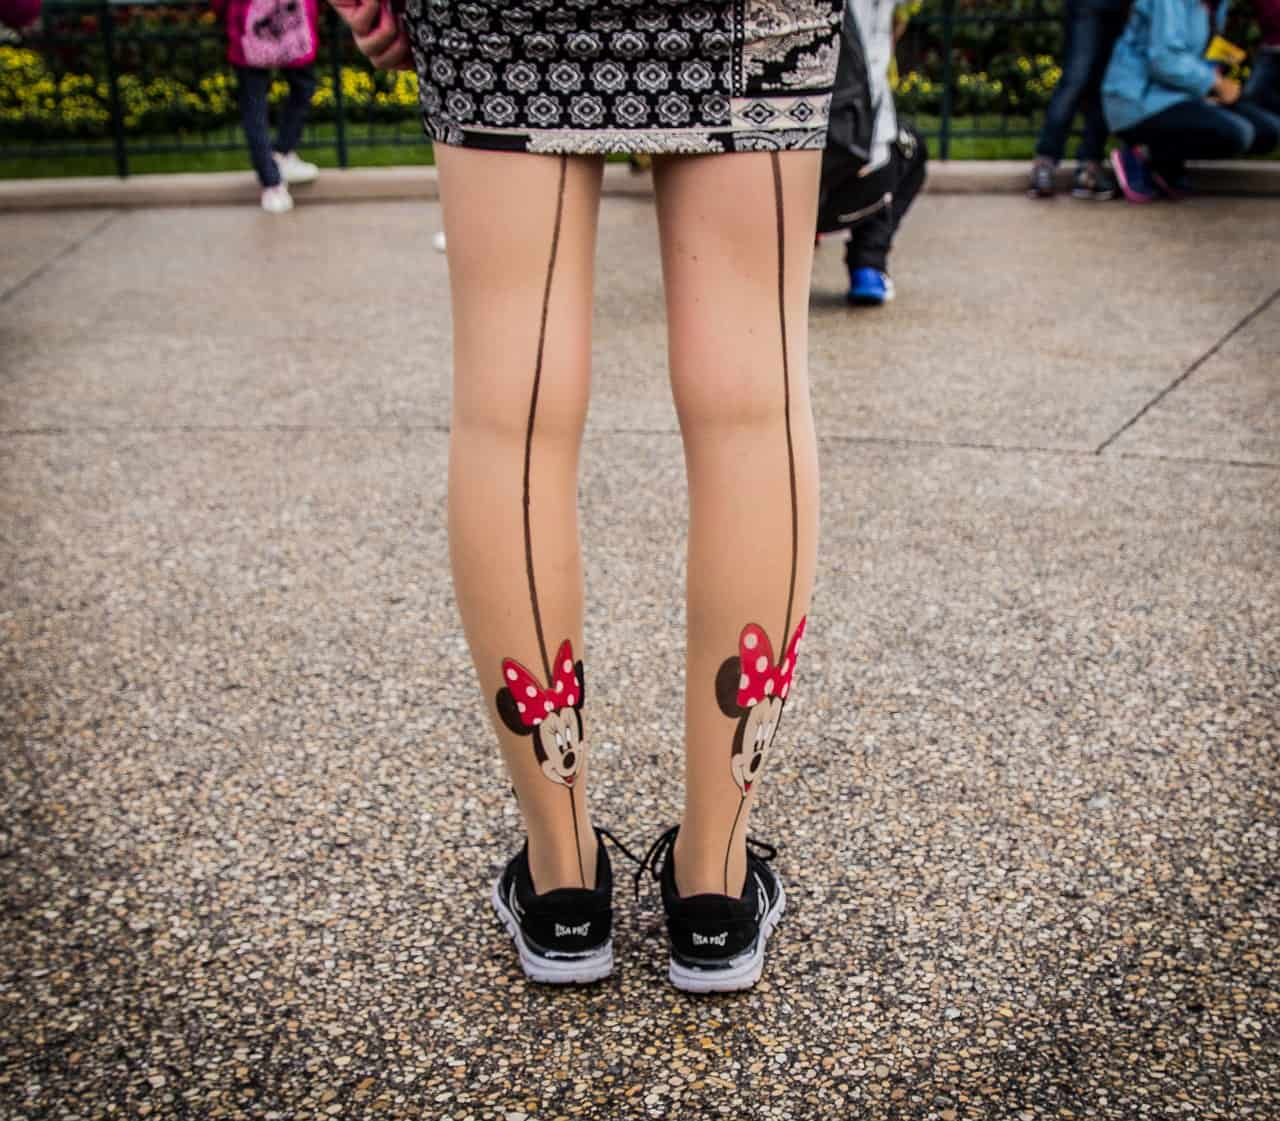 MUST READ Best Shoes For Disney For Women And Men In 2020